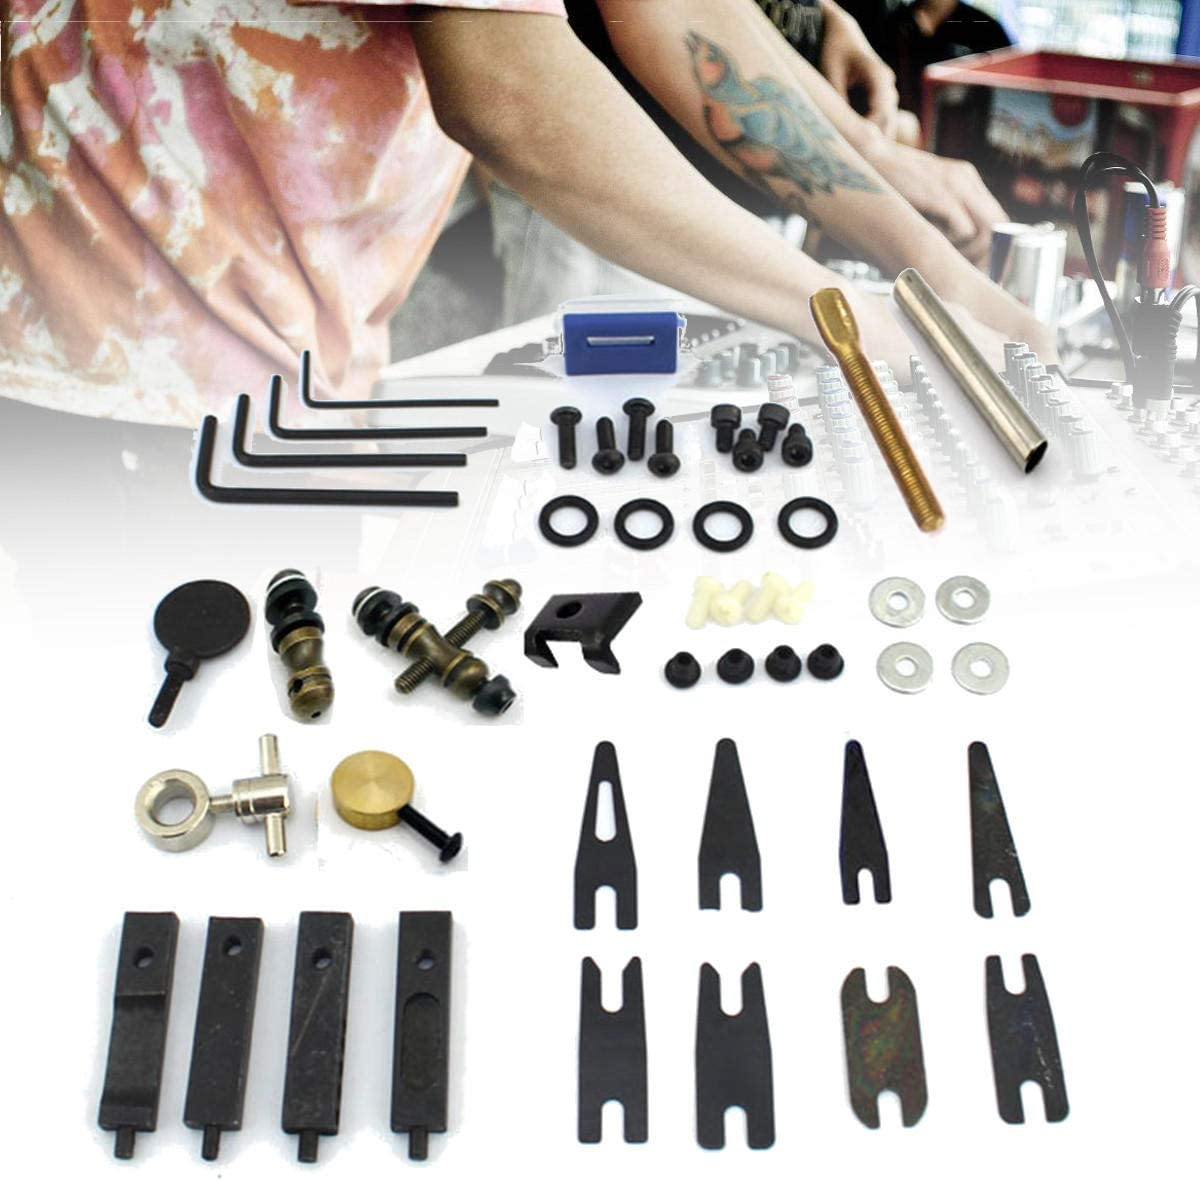 wangliwer Tattoo Machine Accessories Quality inspection Parts Mesa Mall